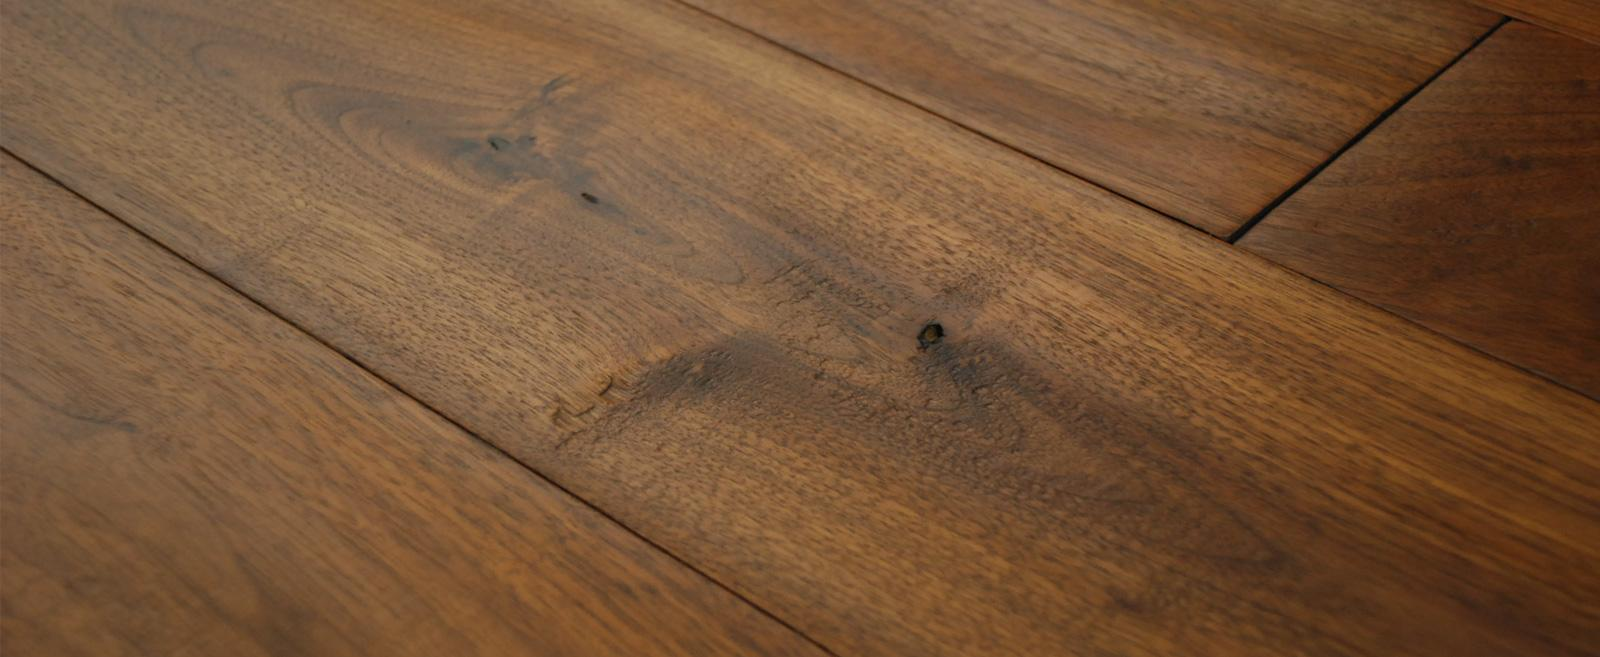 Wide Plank Walnut with Hardwax Oil - Premium Hardwood Floors